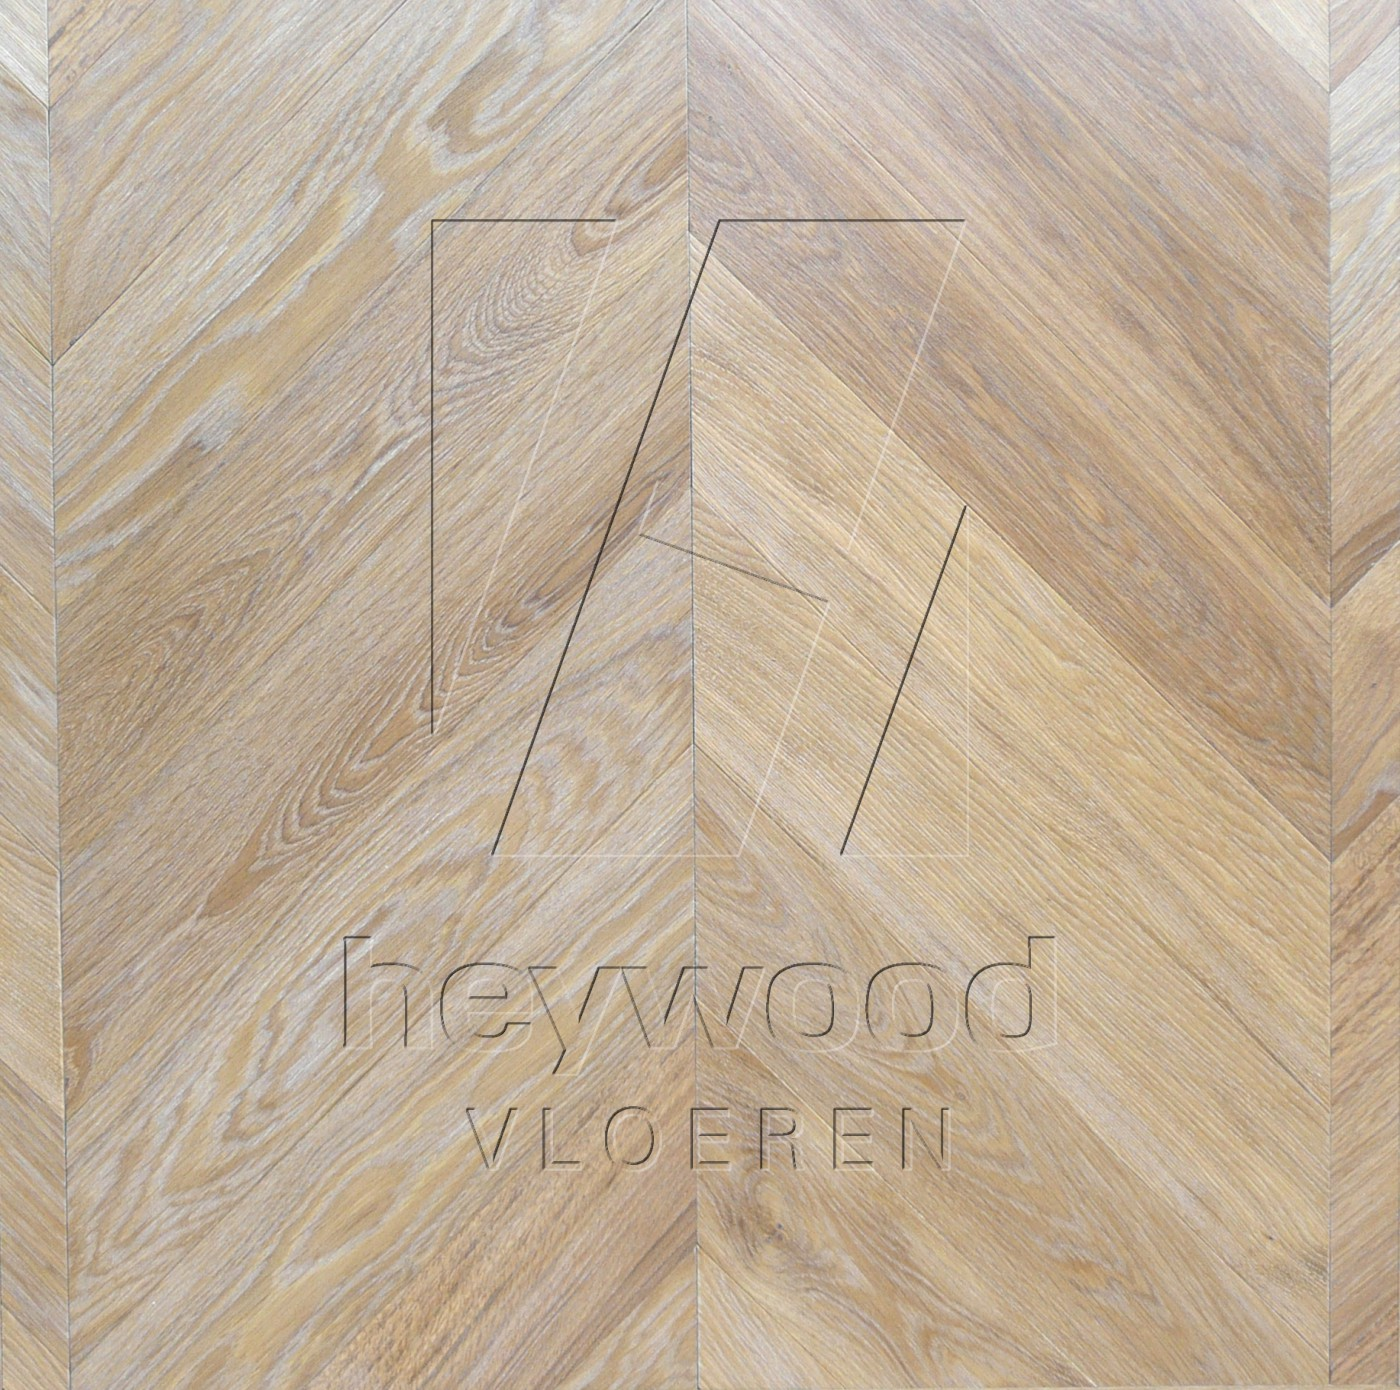 Chevron Alaska in Chevron of Pattern & Panel Floors